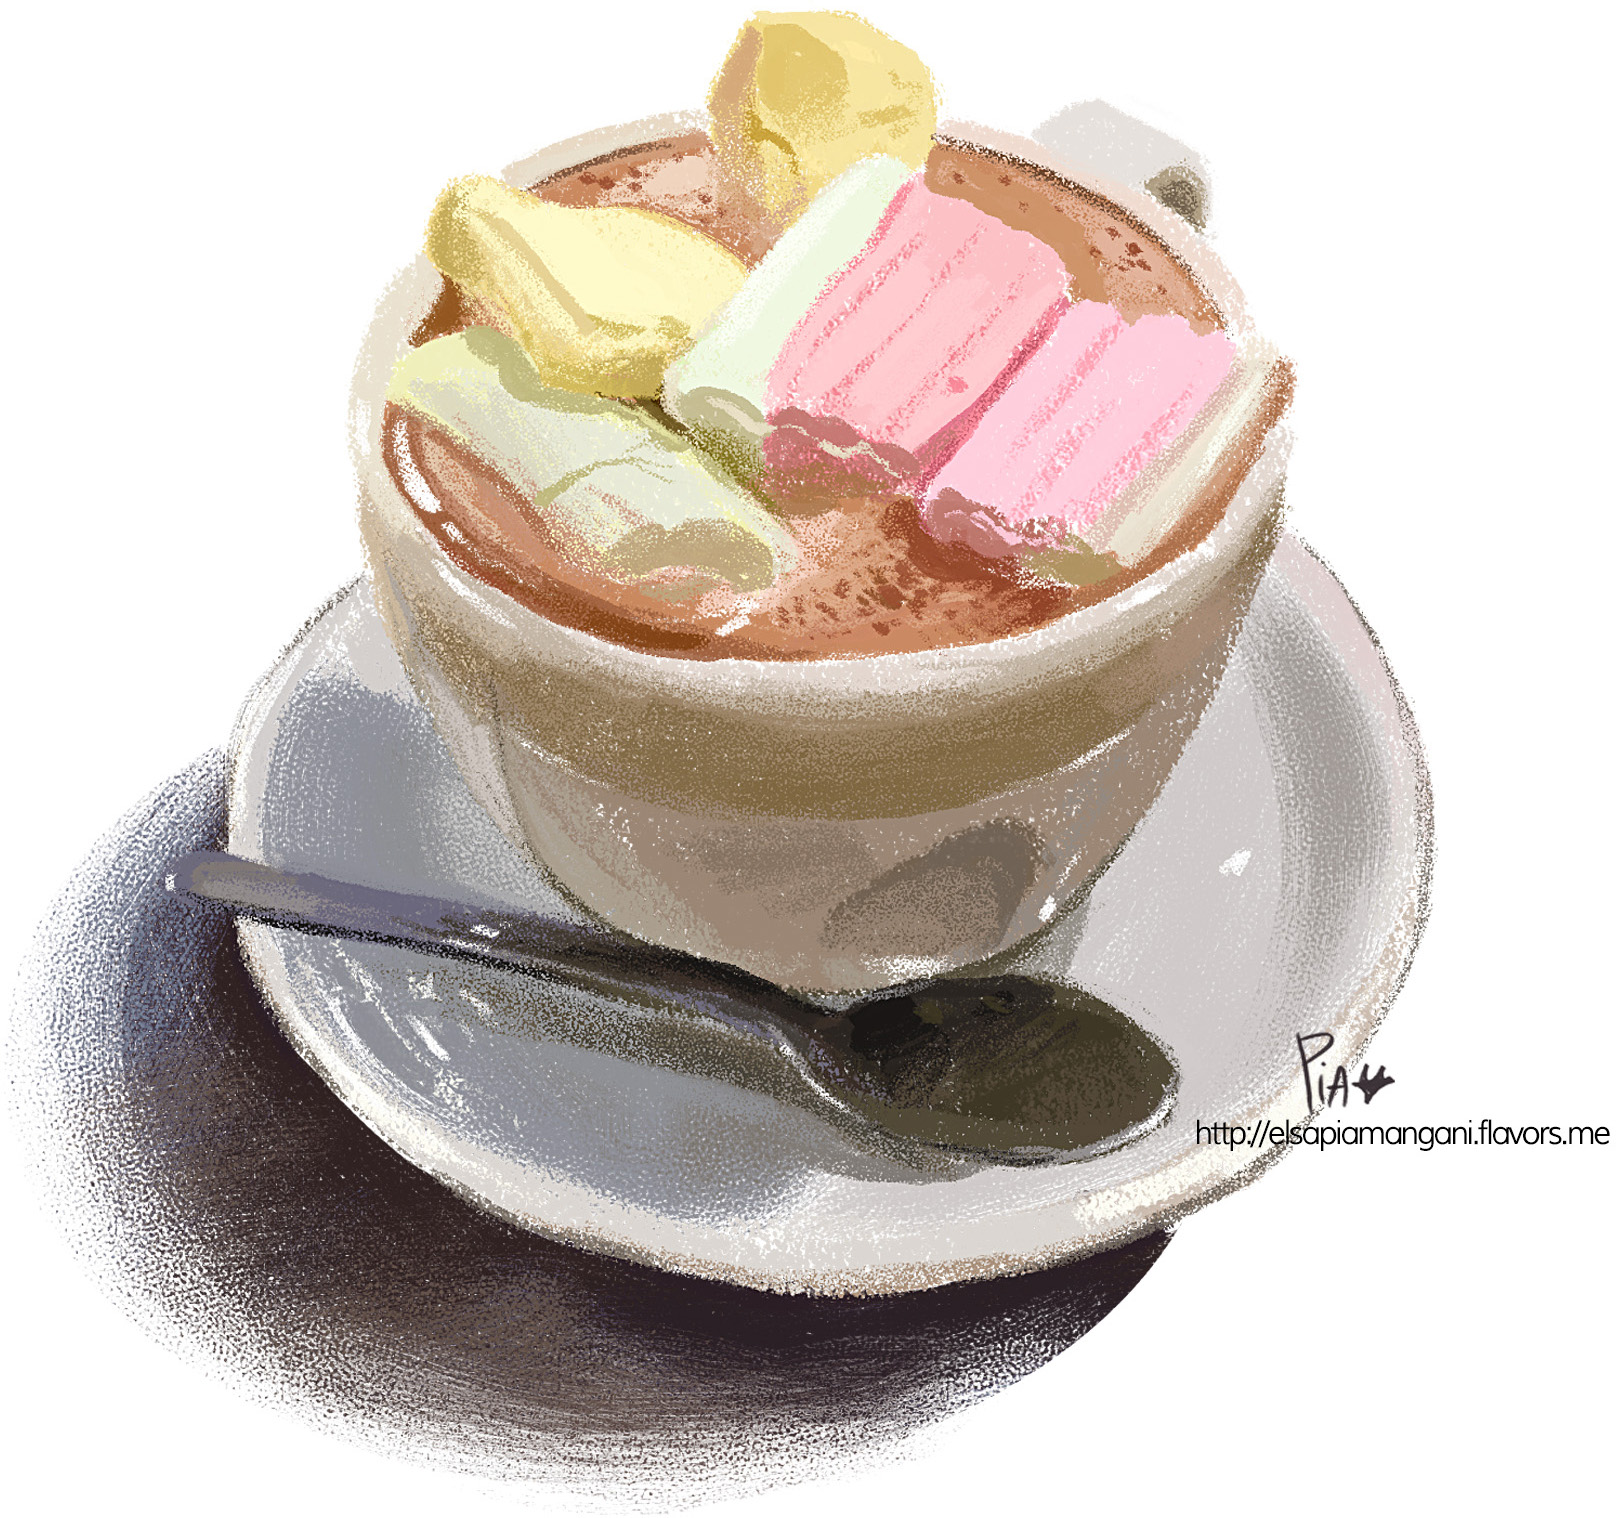 hot chocolate with marshmallows on top